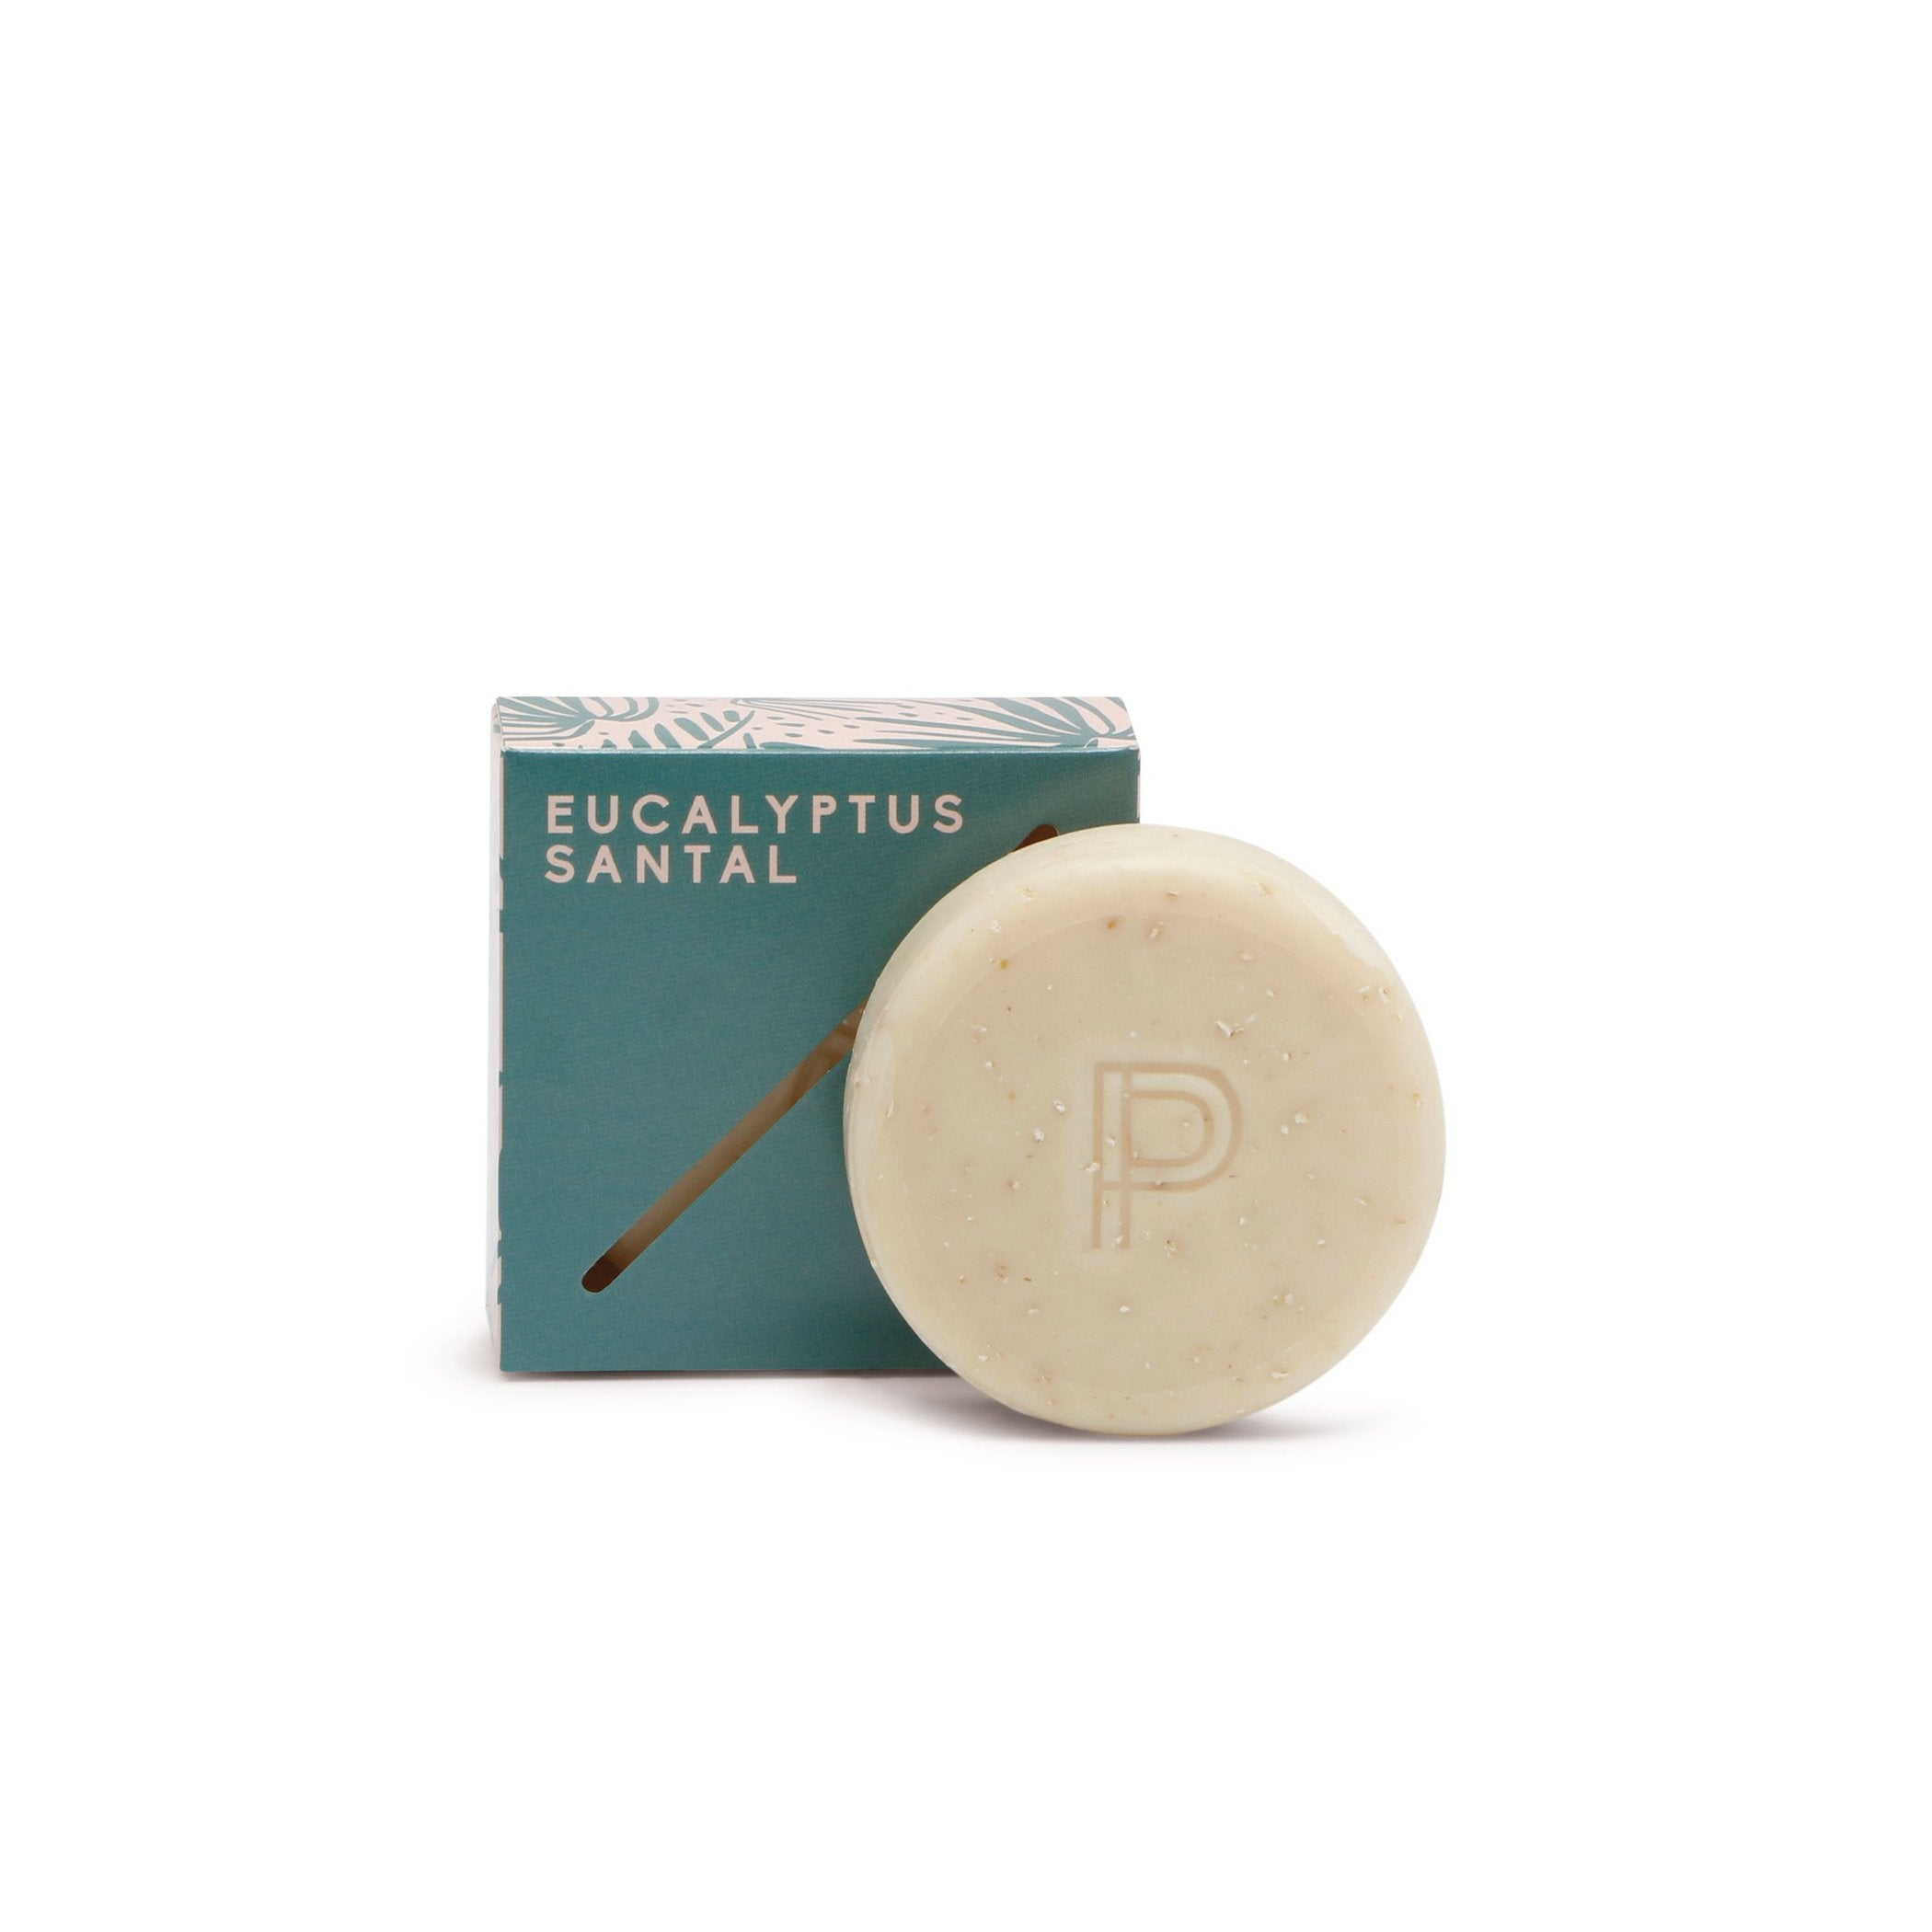 Eucalyptus Santal Bar Soap